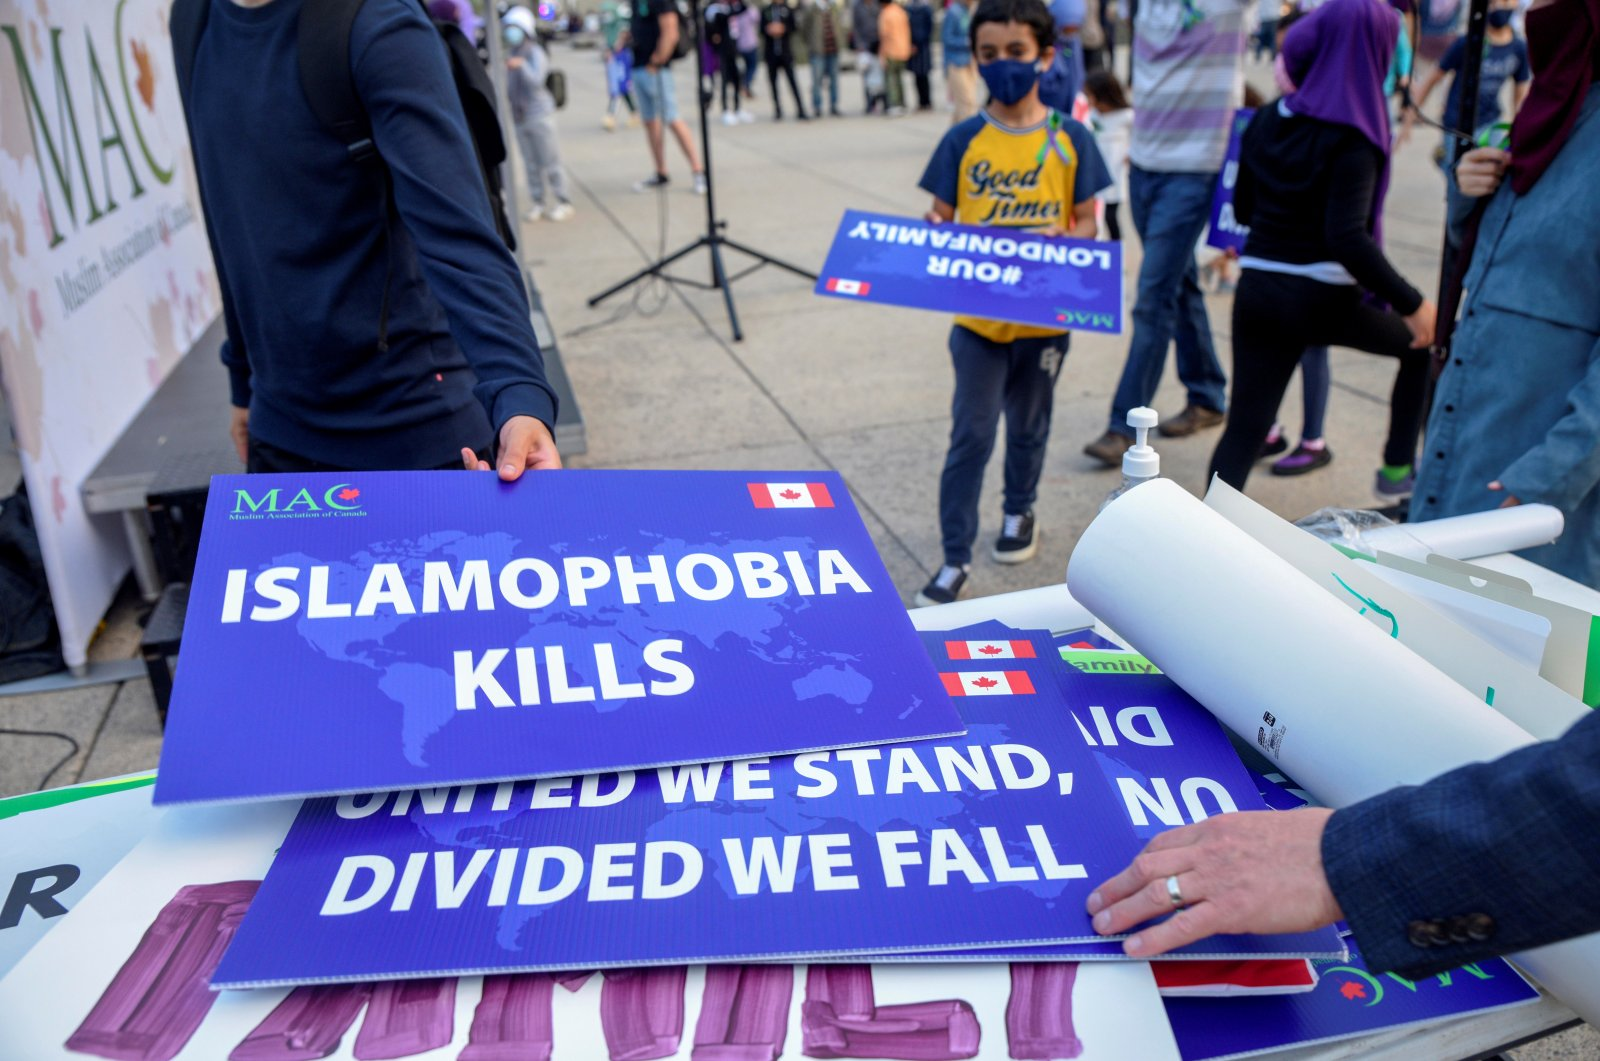 Attendees return signs after a rally to highlight Islamophobia, sponsored by the Muslim Association of Canada including the June 6 London, Ontario attack which killed a Muslim family in what police describe as a hate-motivated crime, in Toronto, Ontario, Canada, June 18, 2021. (Reuters Photo)